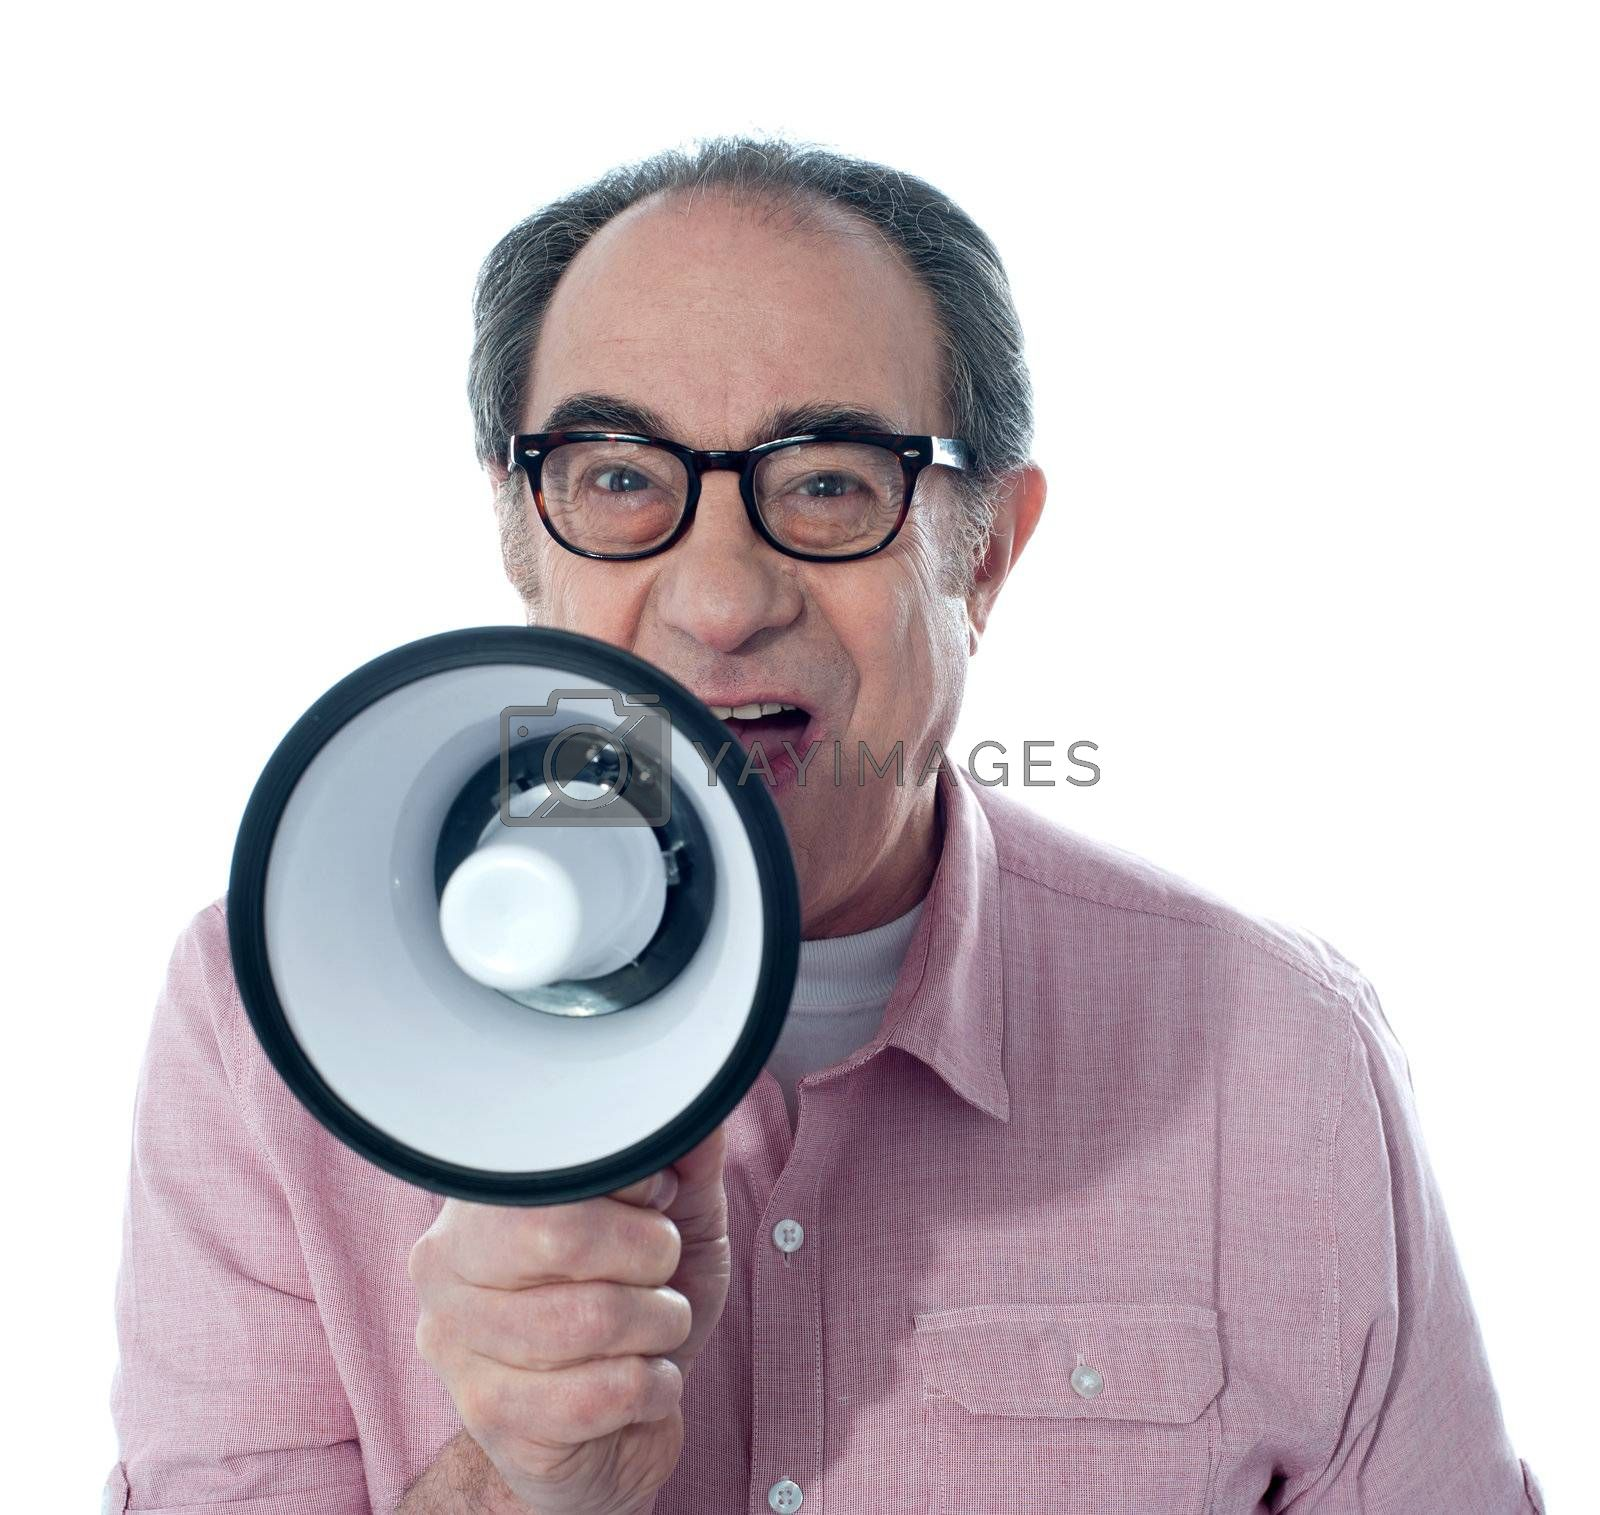 Excited old man making an announcement through megaphone, close to camera